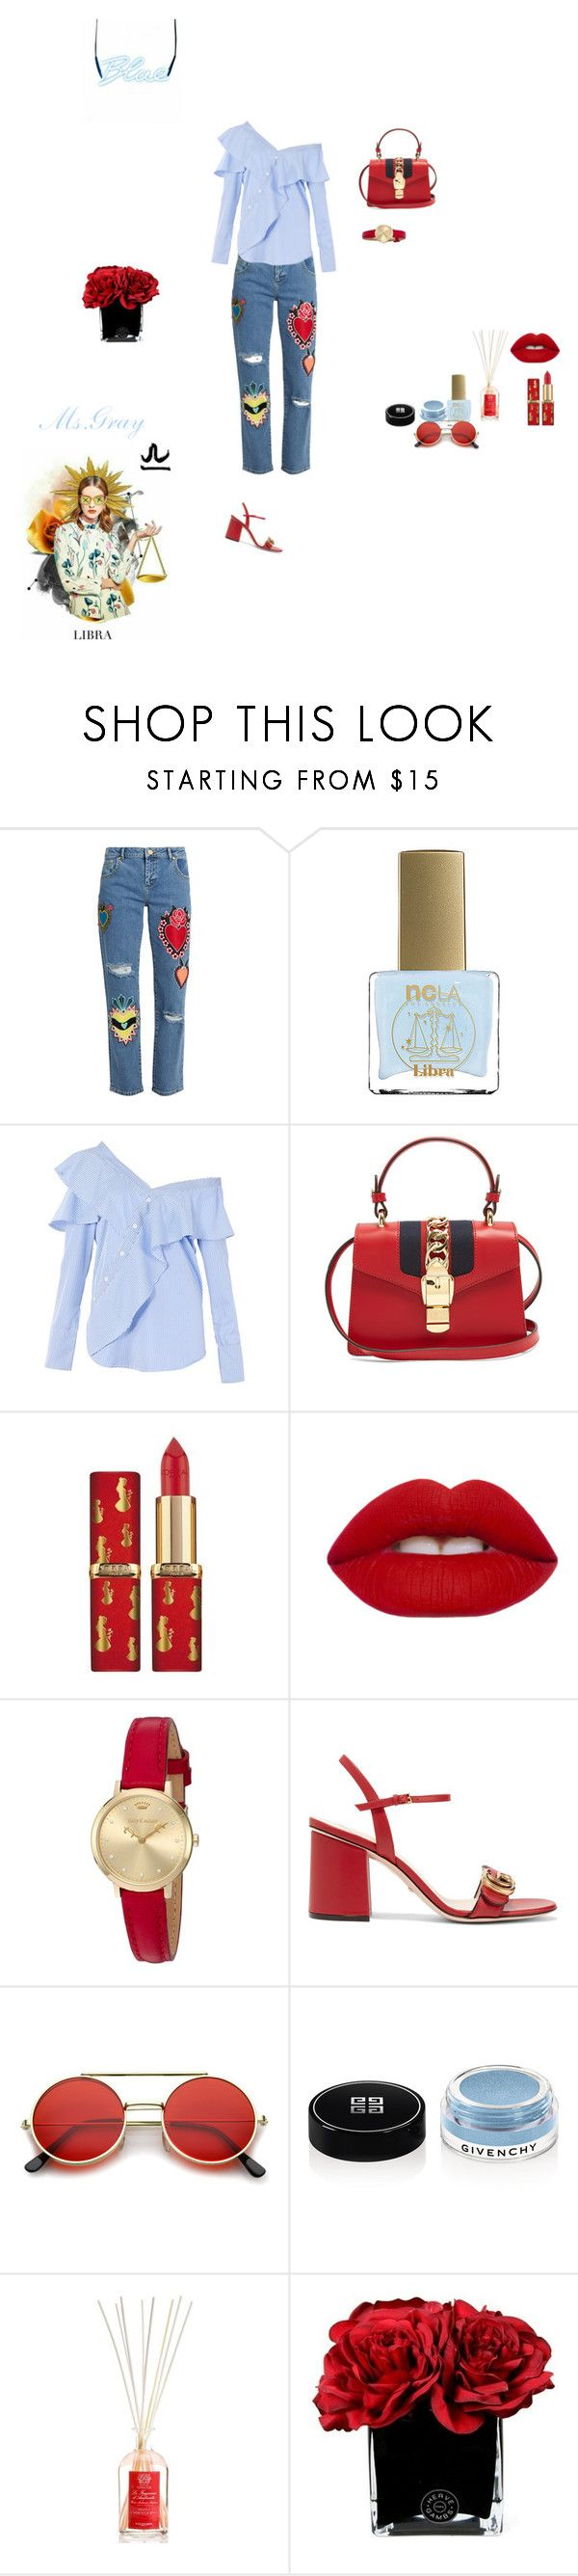 """Libra Justice"" by fmsgray ❤ liked on Polyvore featuring House of Holland, ncLA, FAIR+true, Gucci, Lime Crime, Juicy Couture, ZeroUV, Givenchy, Antica Farmacista and Hervé Gambs"